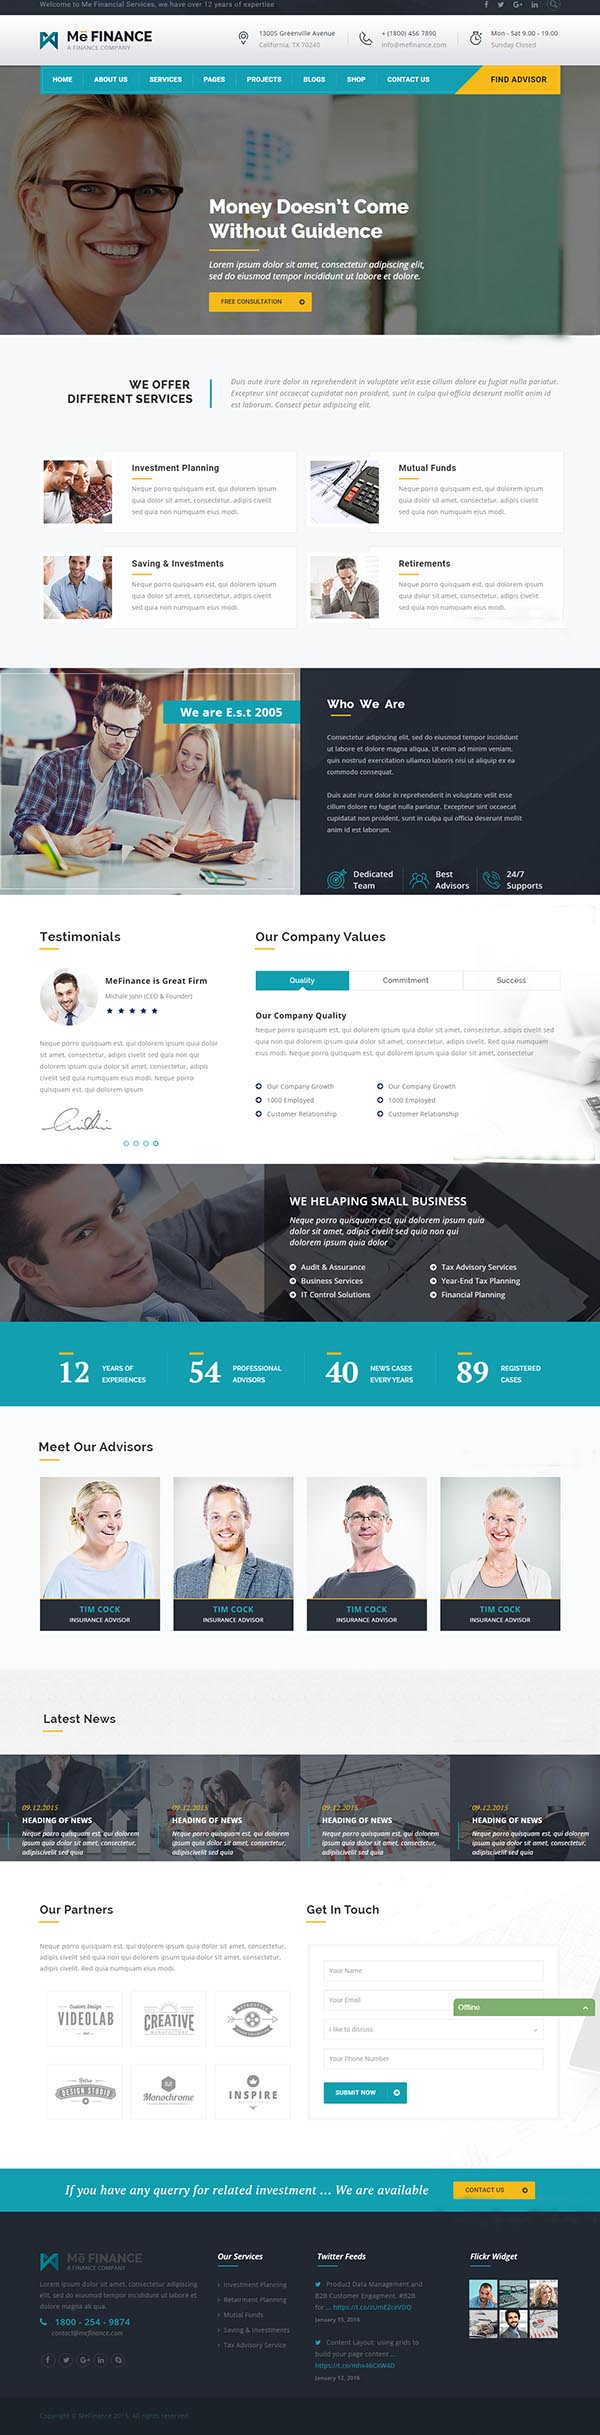 Me Finance - Business and Finance HTML Template